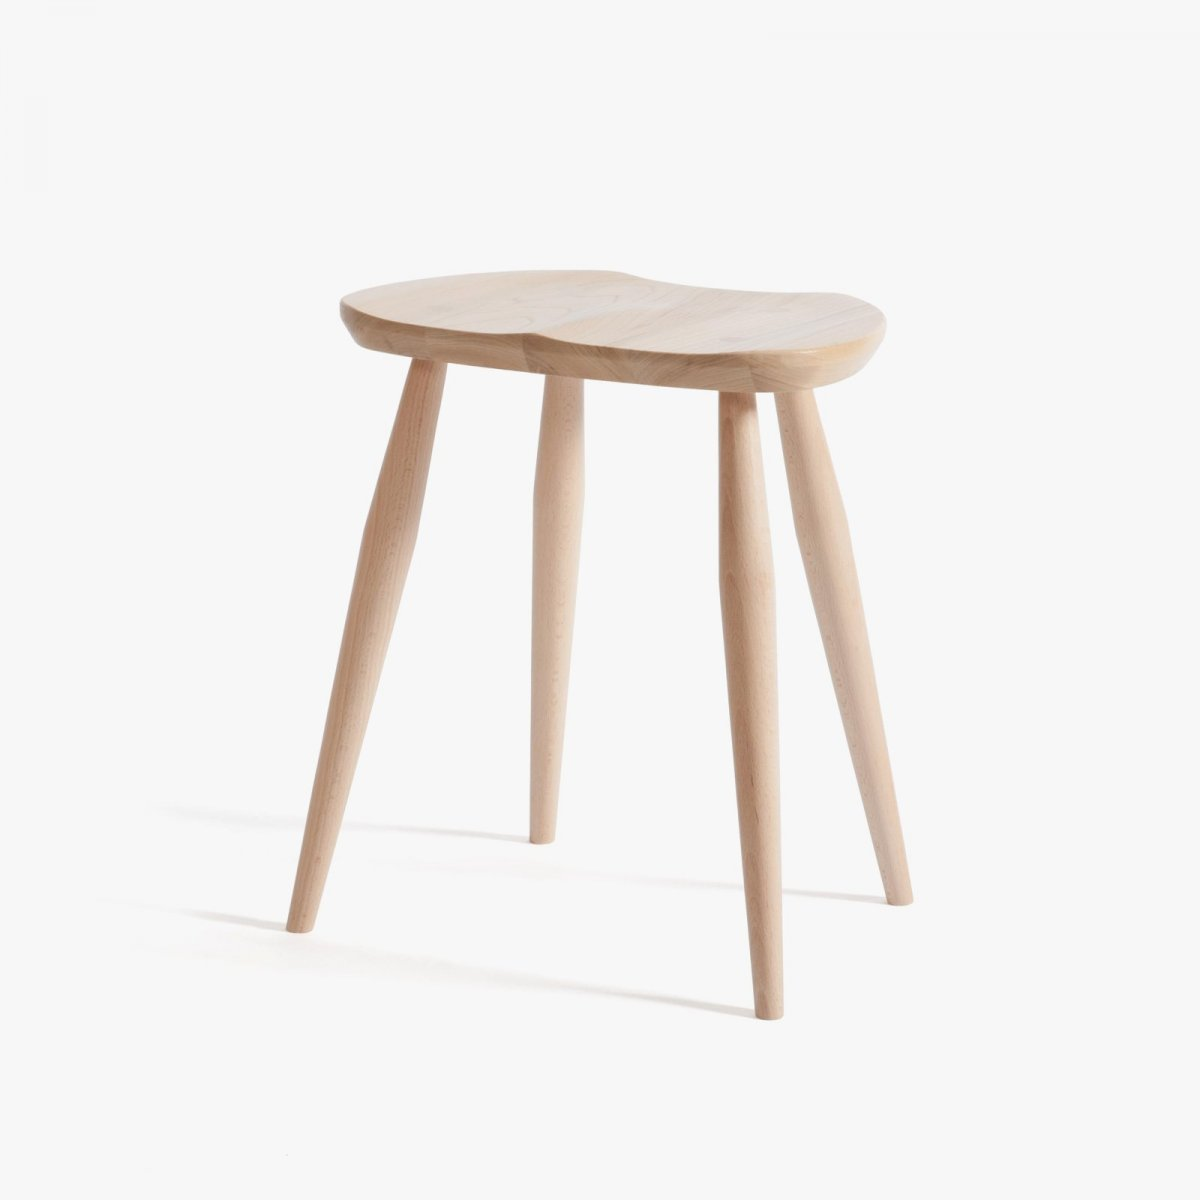 Originals Saddle Stool.